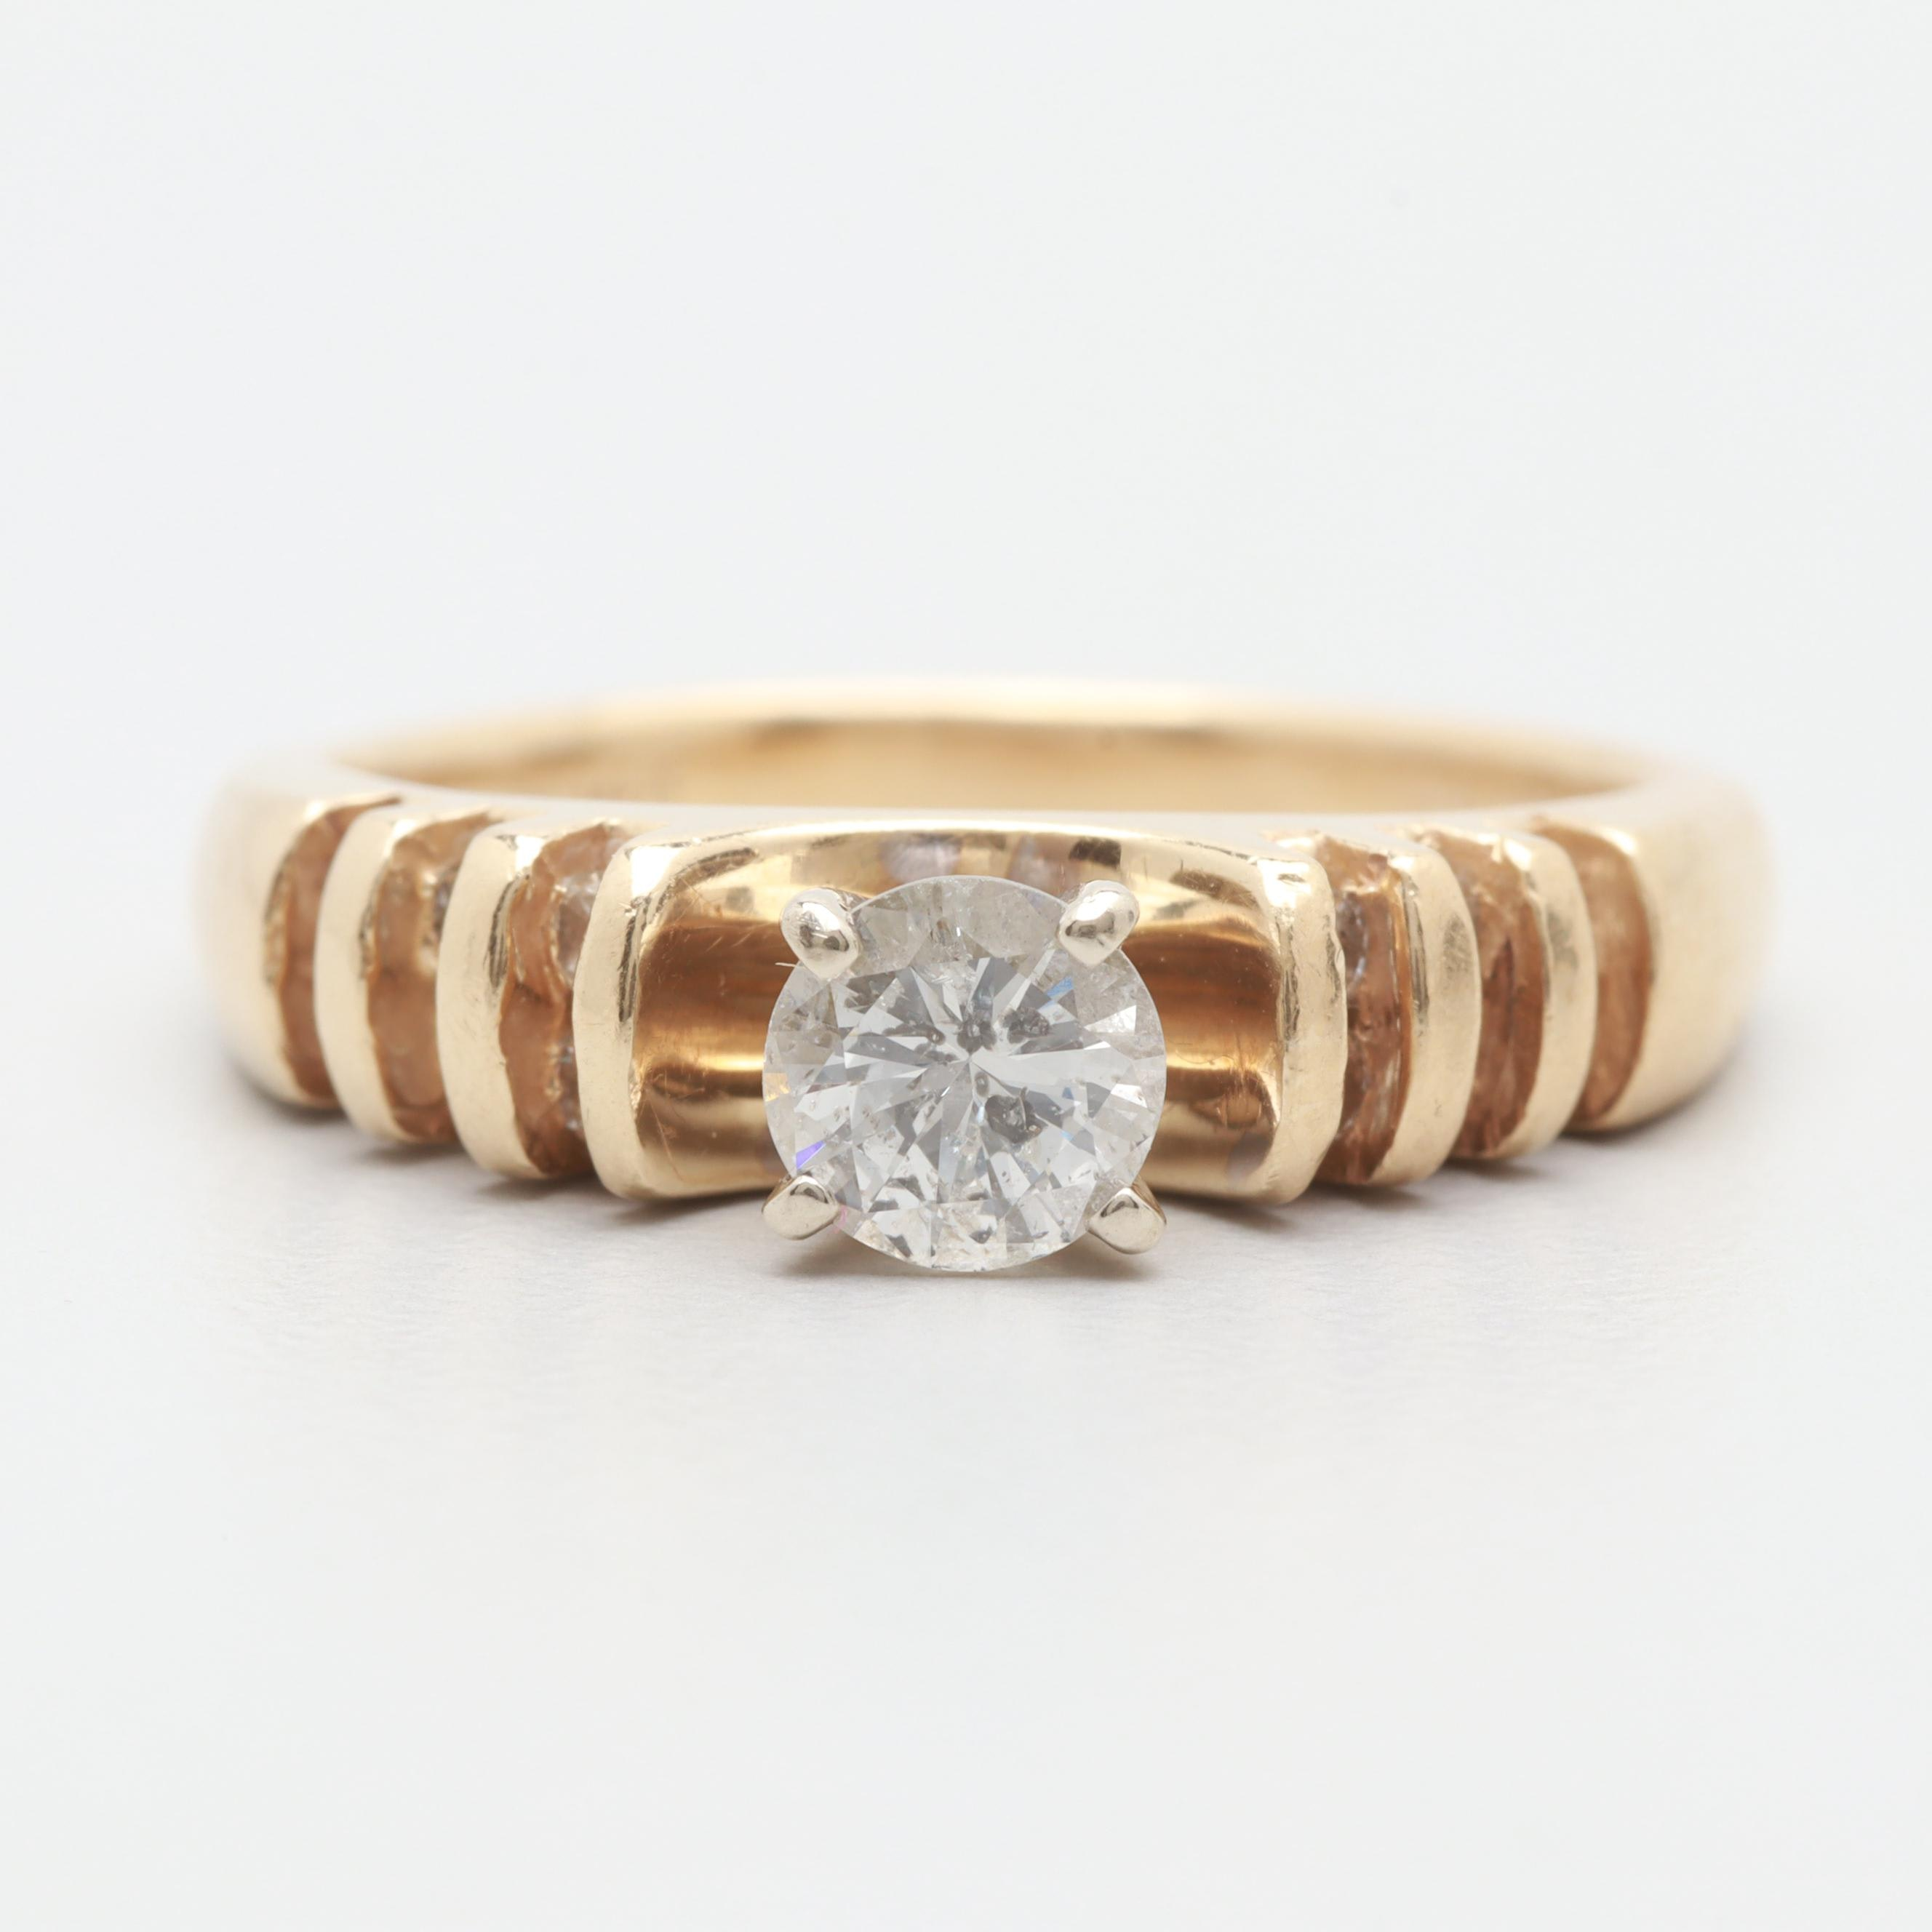 14K Yellow Gold Diamond Ring with 10K White Gold Accents